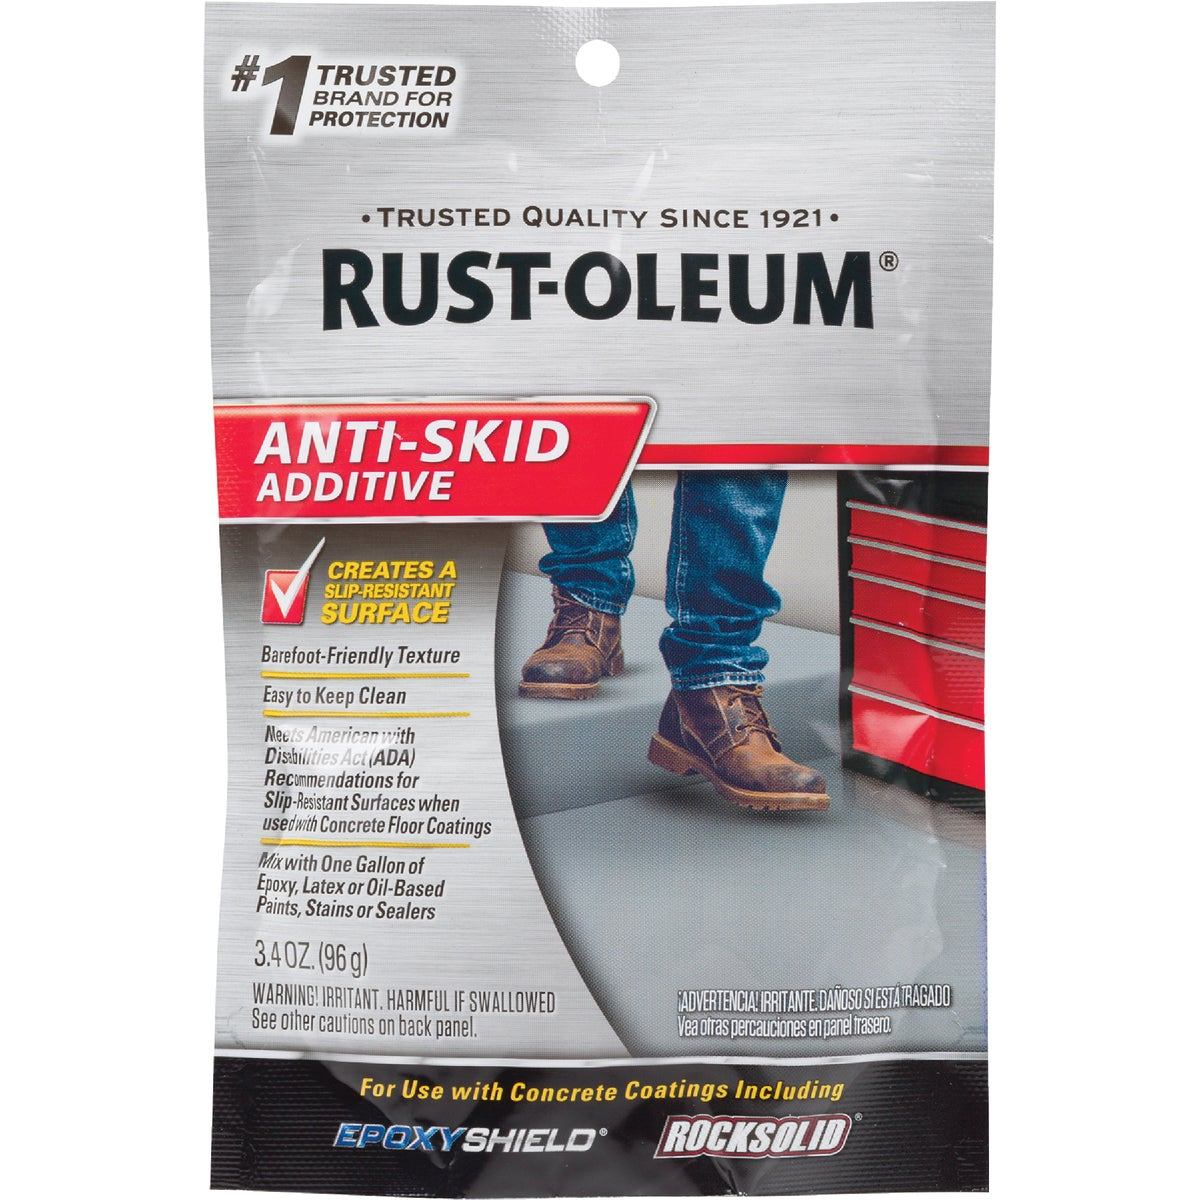 3.4OZ ANTI-SKID ADDITIVE - 279847 by Rustoleum